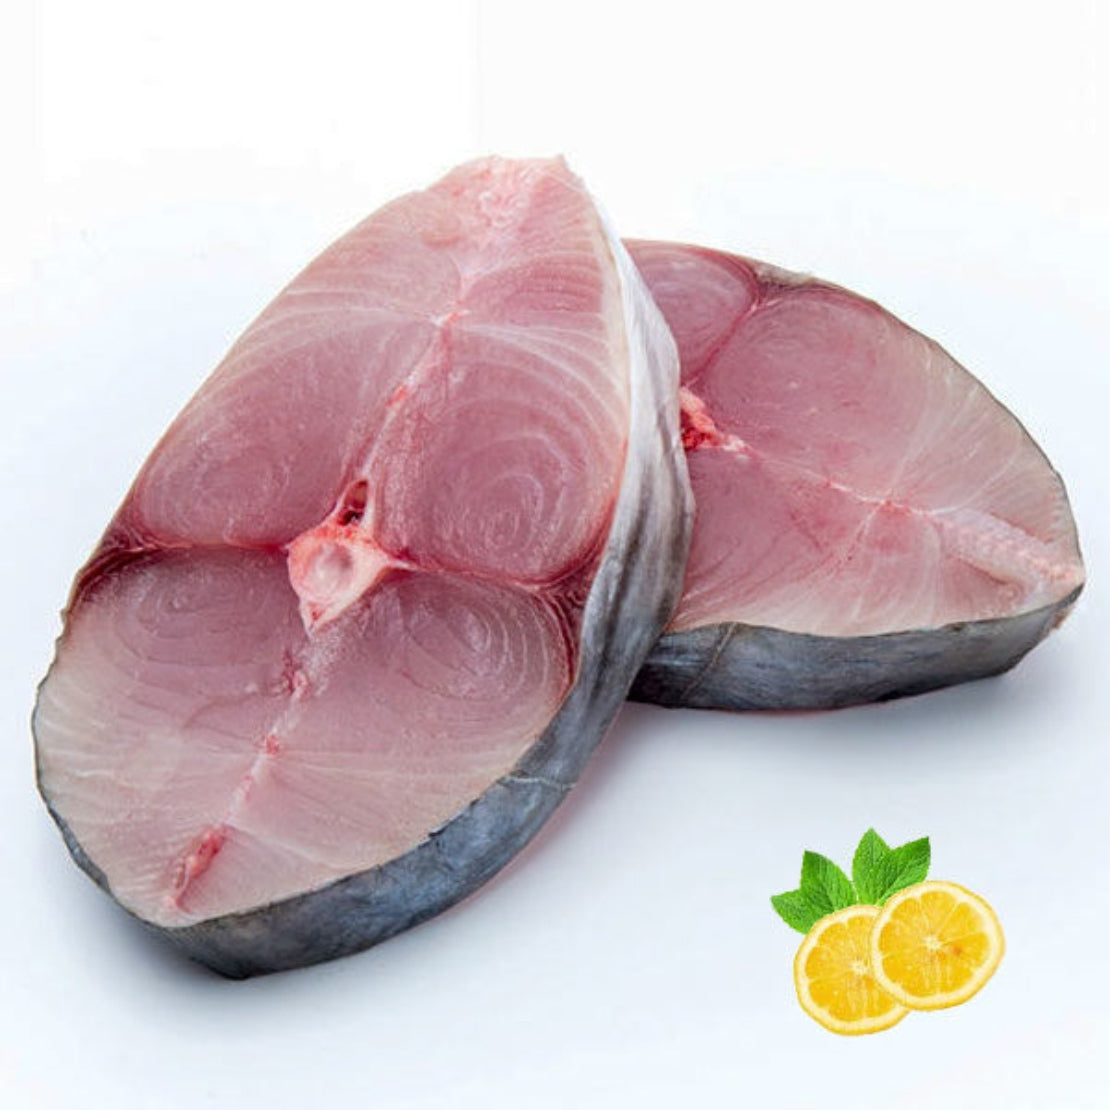 FROZEN SURMAI SLICES / SEER FISH SLICES / KING FISH SLICES (Single Bone, Skin on)- 250 Grams